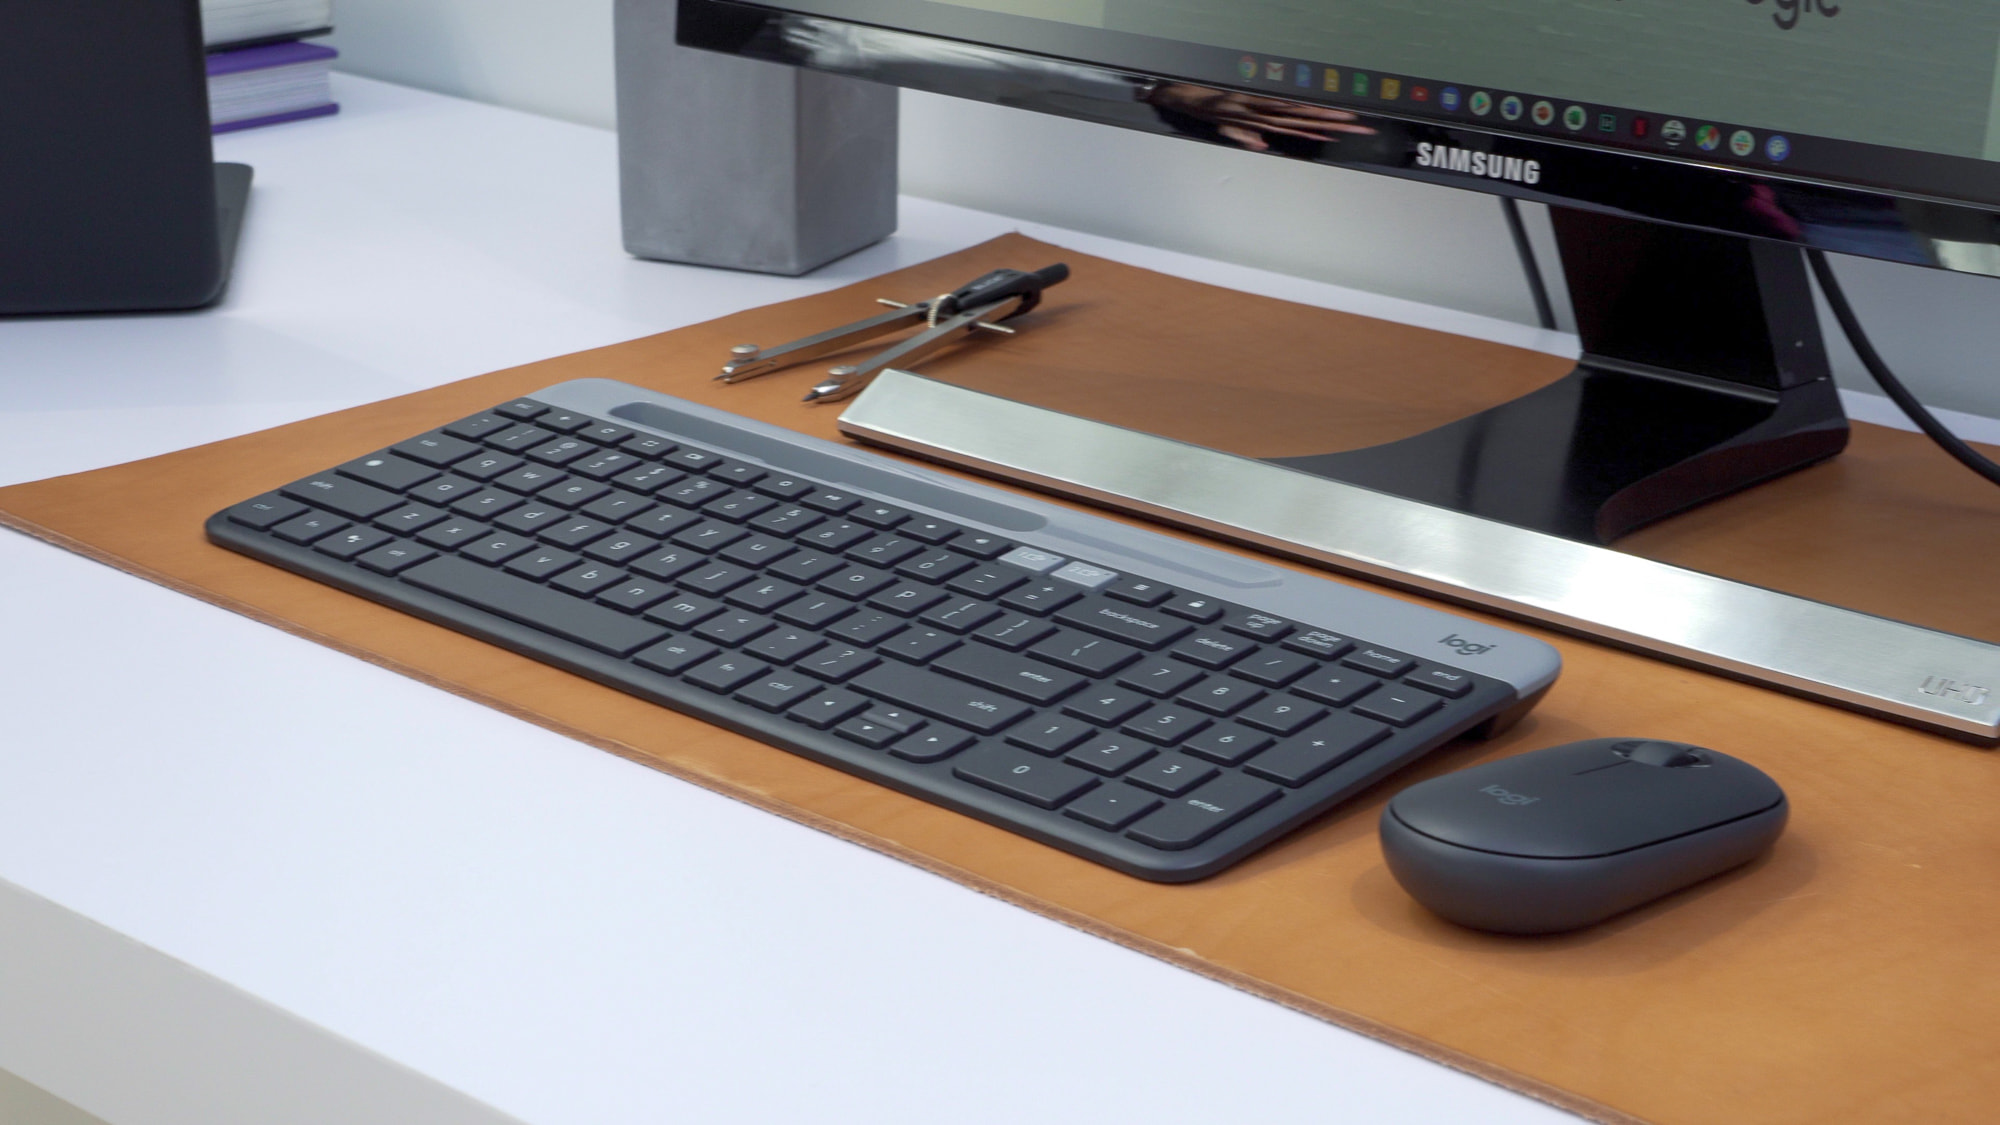 Logitech quietly sneaks in rumored Chrome OS keyboard and mouse at Google event [VIDEO]